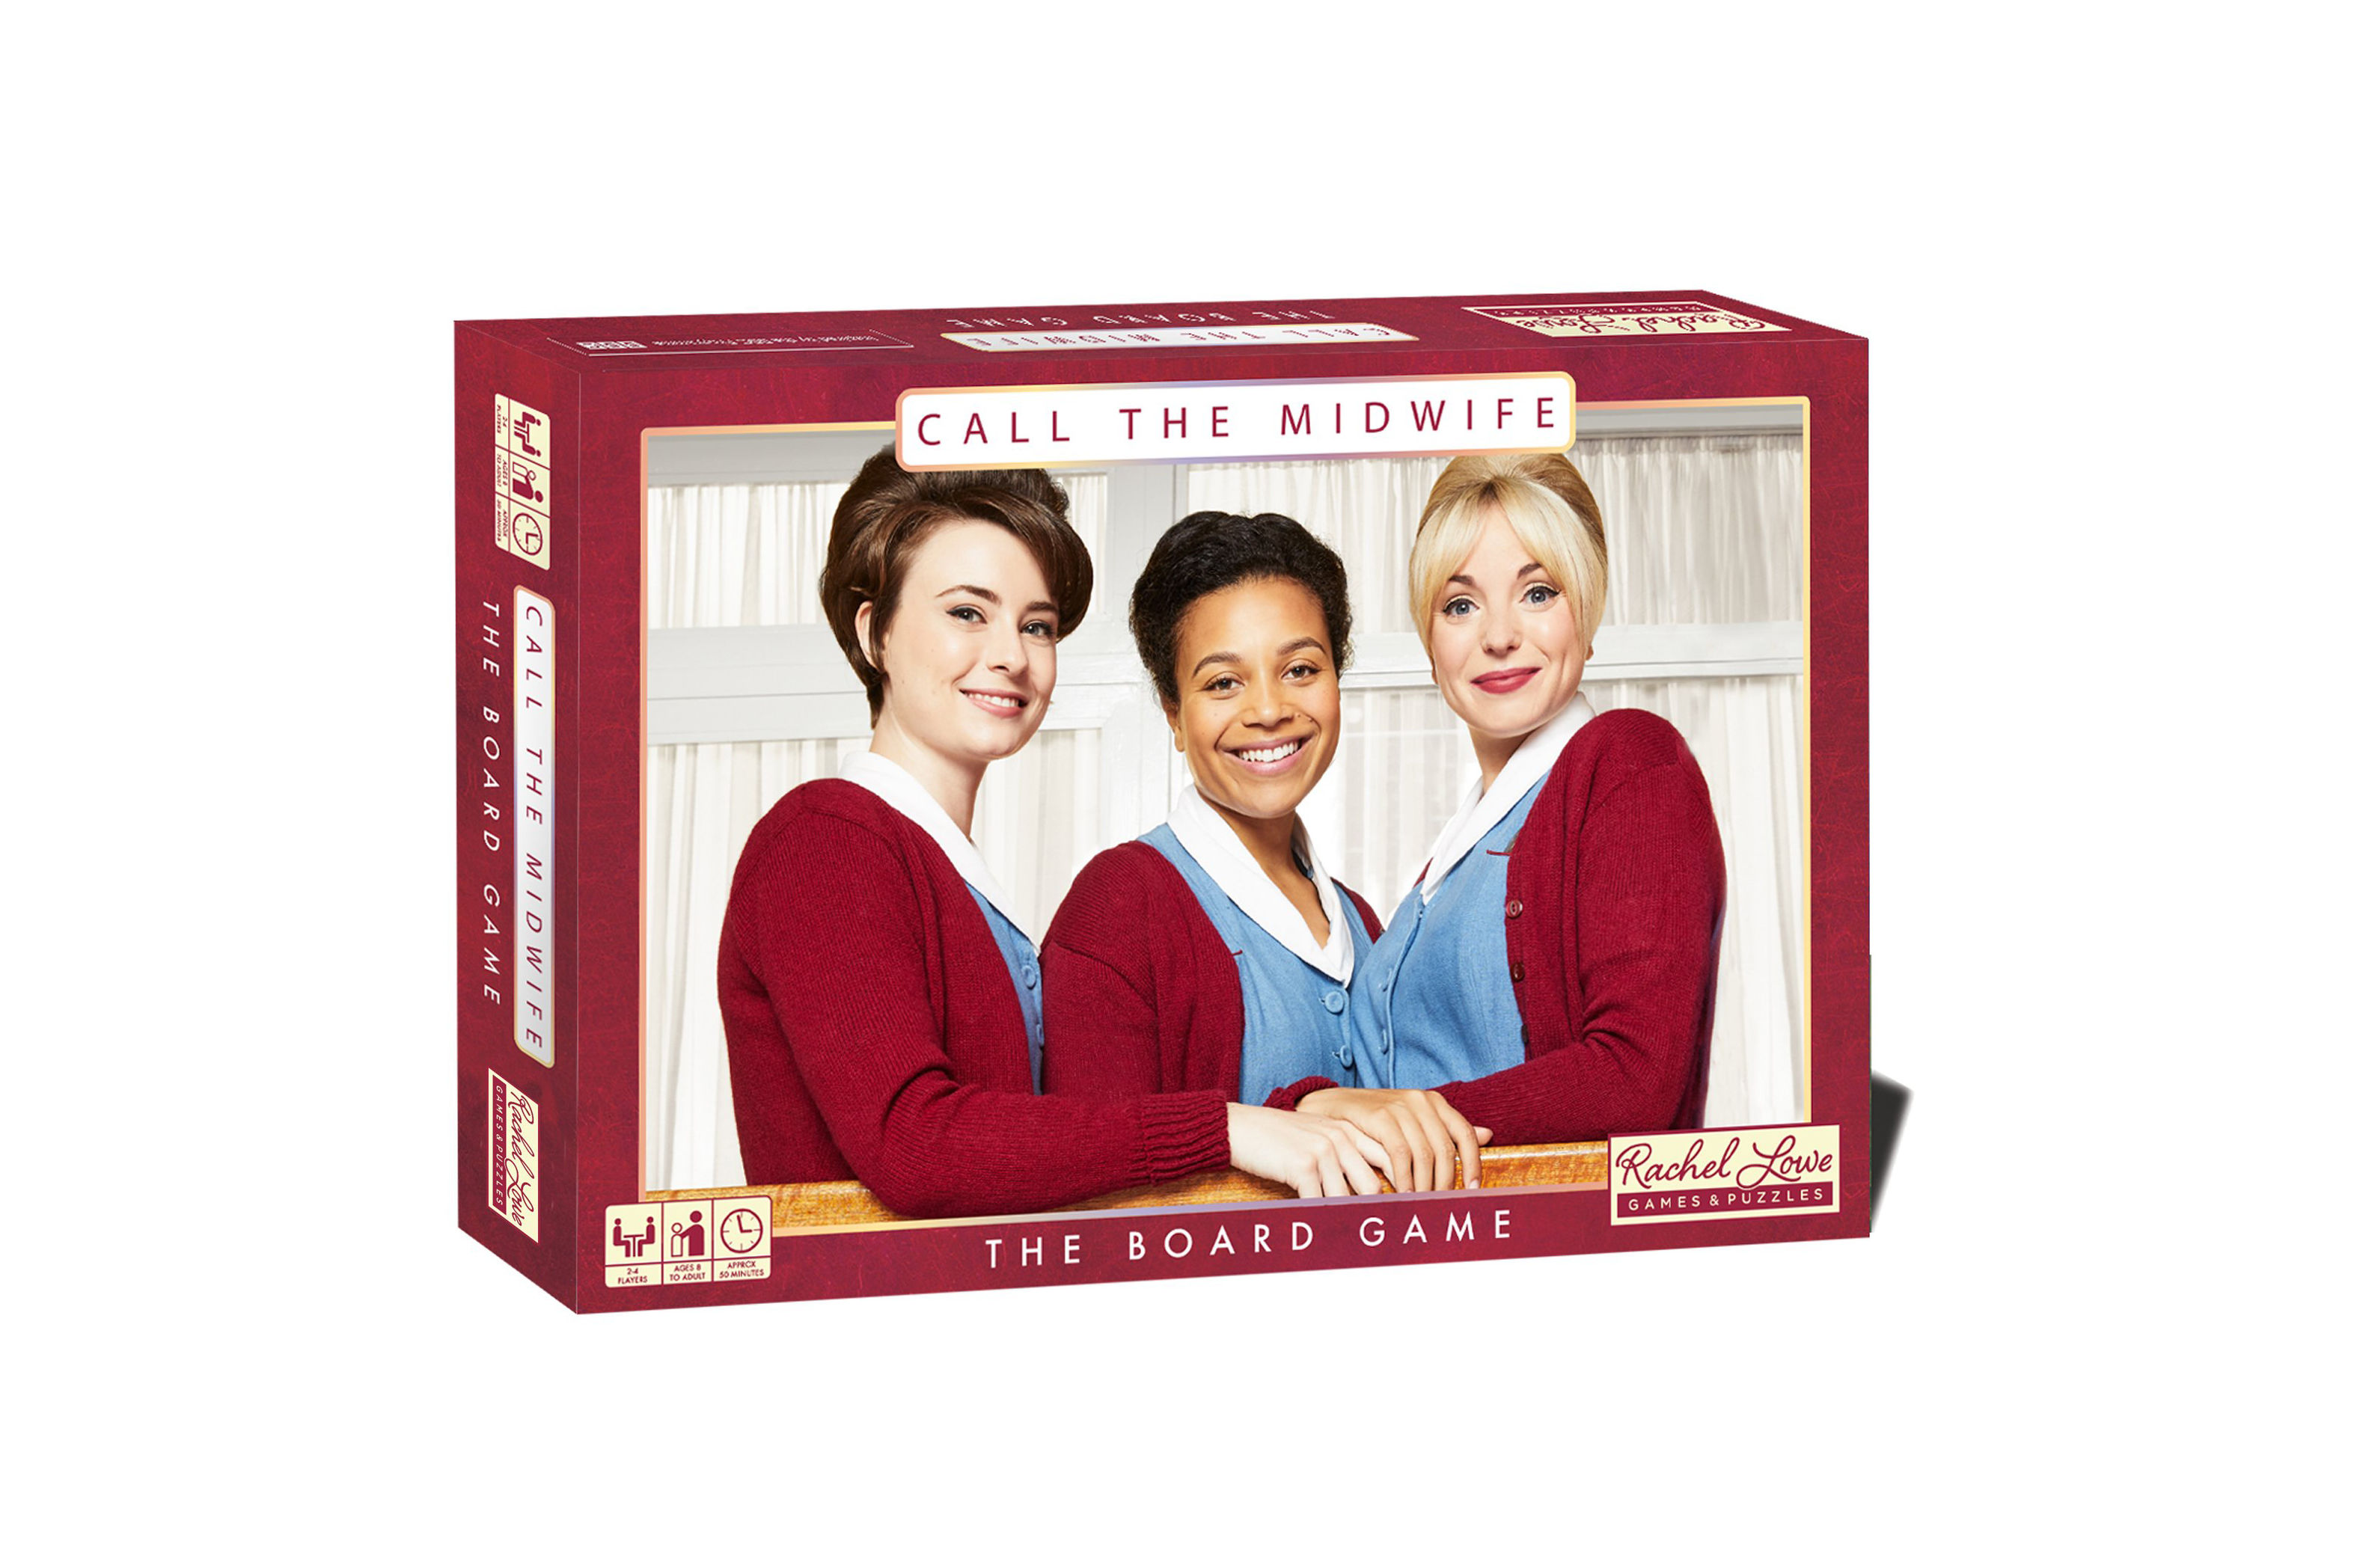 A 'Call the Midwife' Board Game Exists, and You Need It for Your Next Game Night